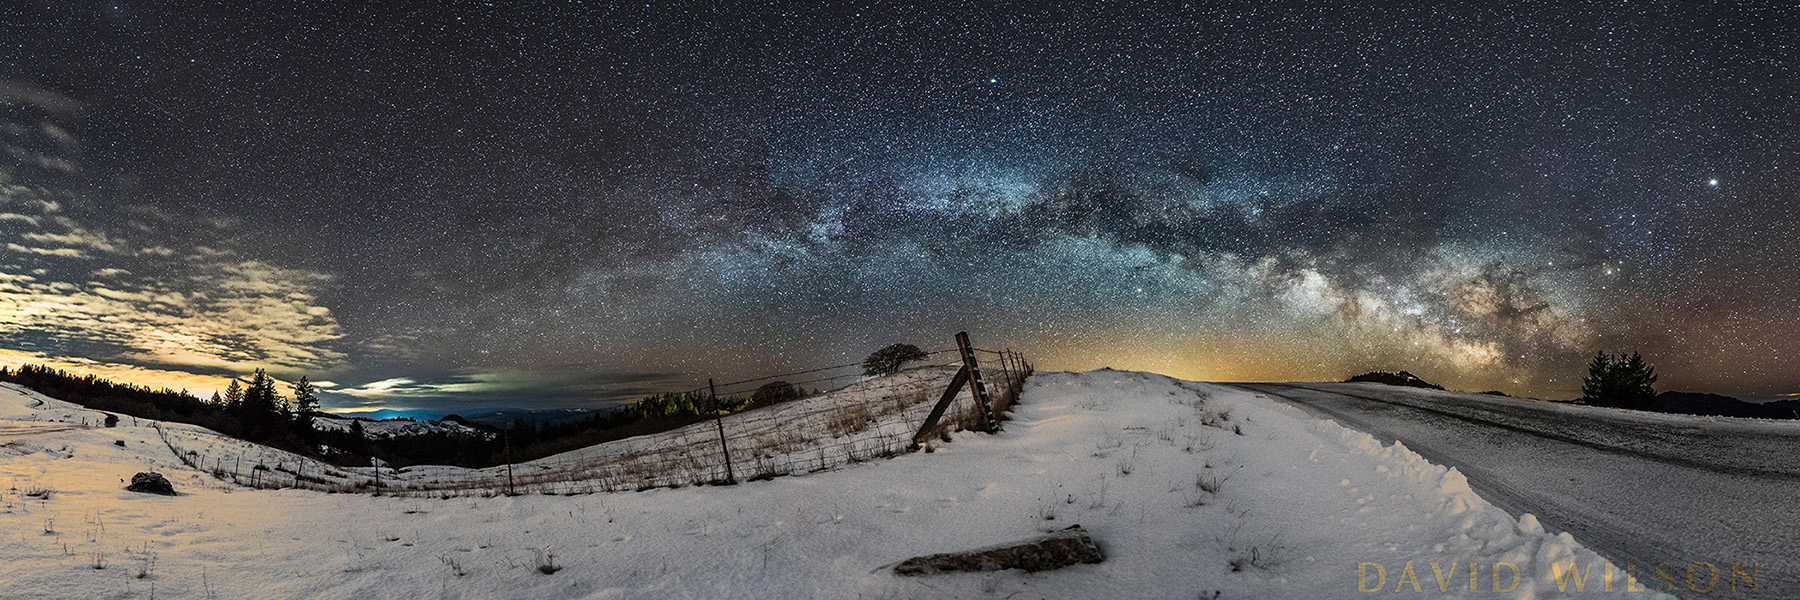 Snowy Panorama beneath Milky Way